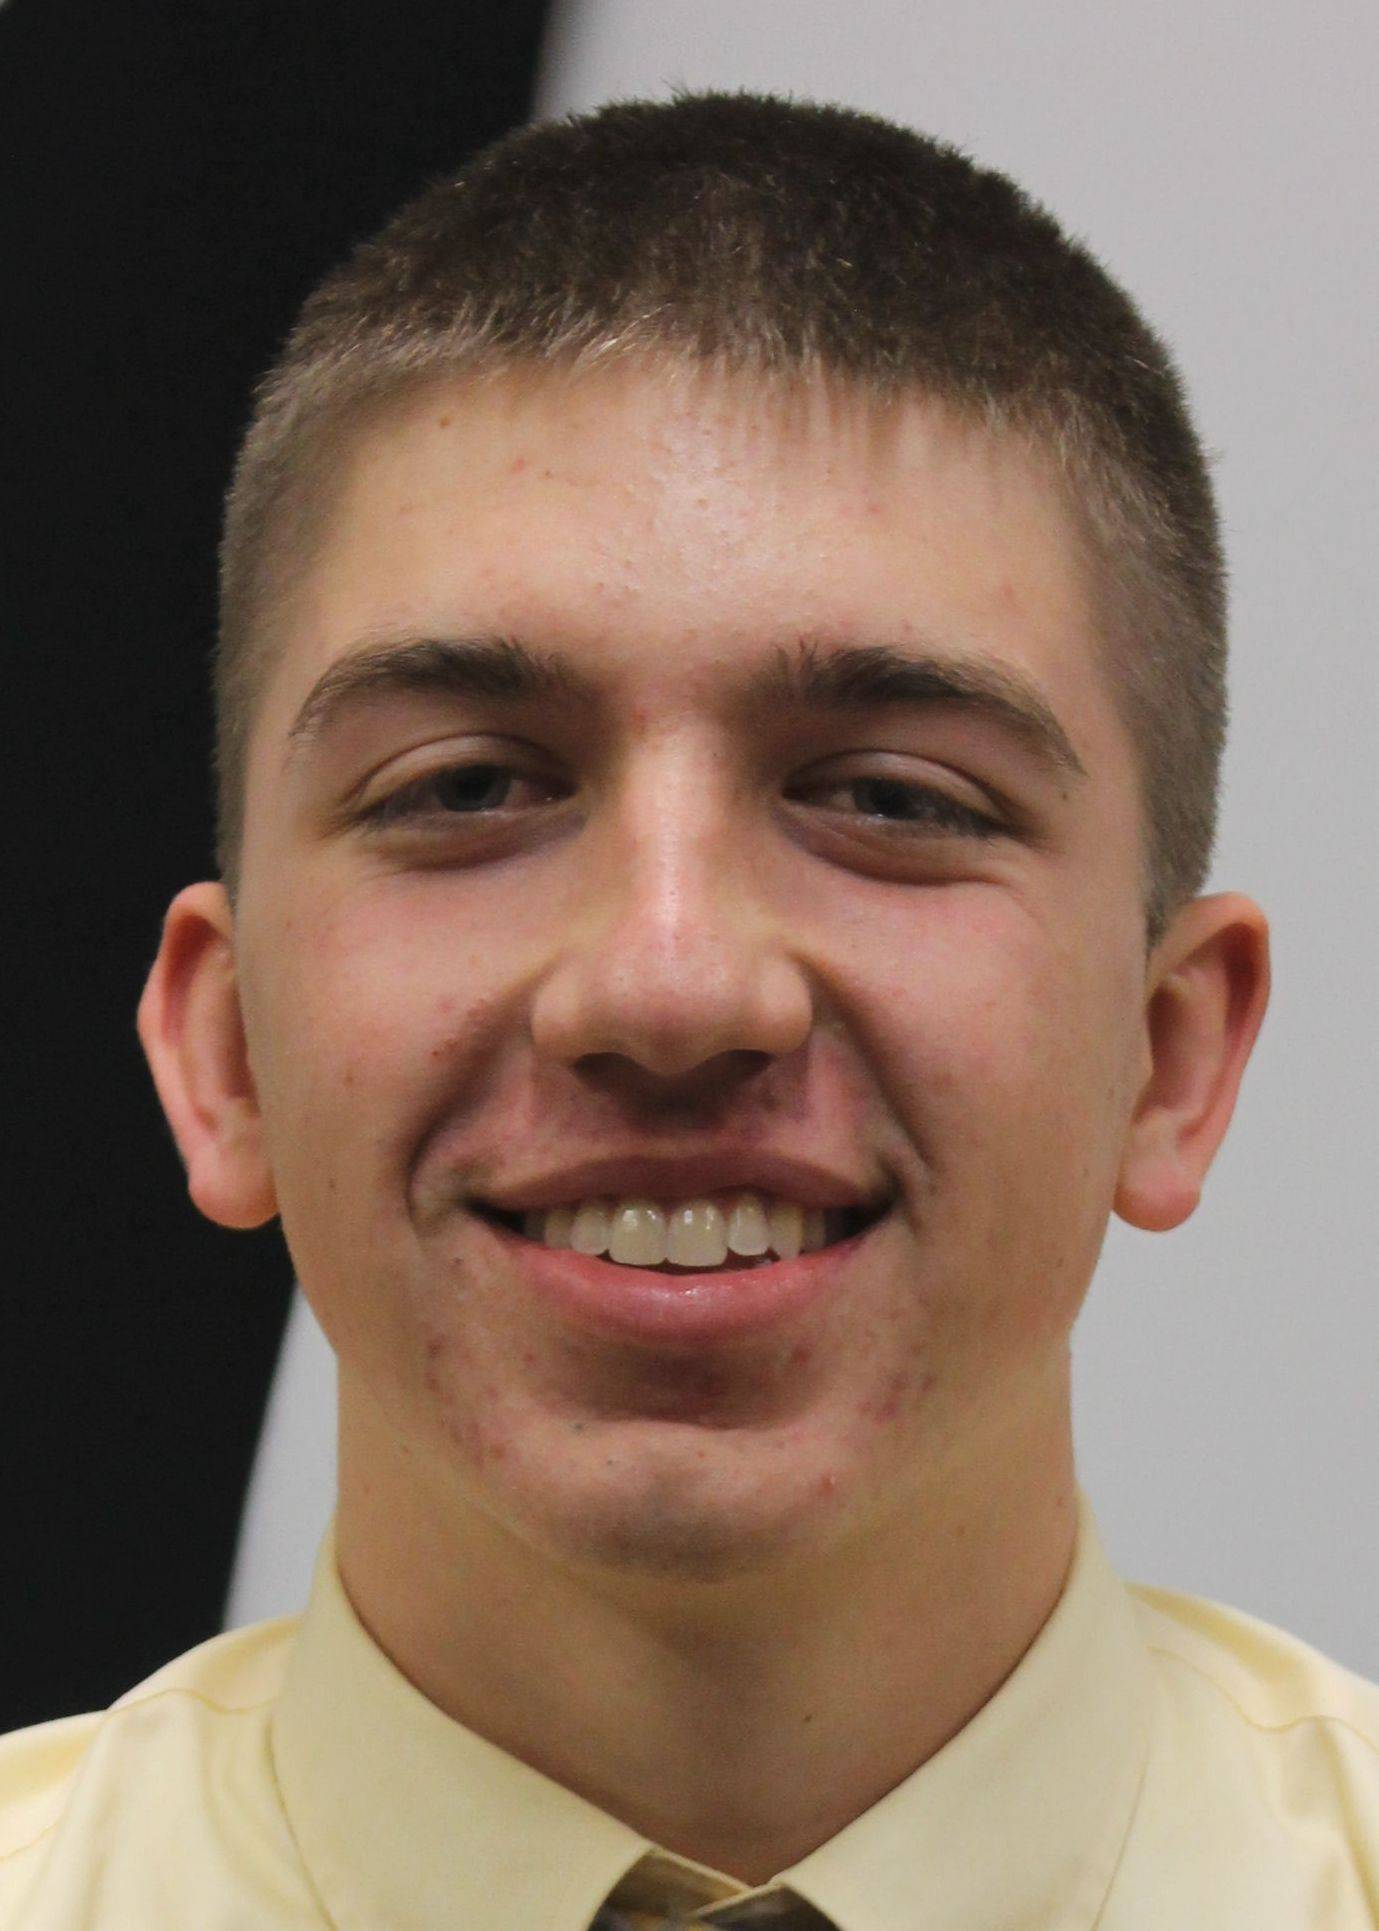 Kaneland basketball player Matt Limbrunner